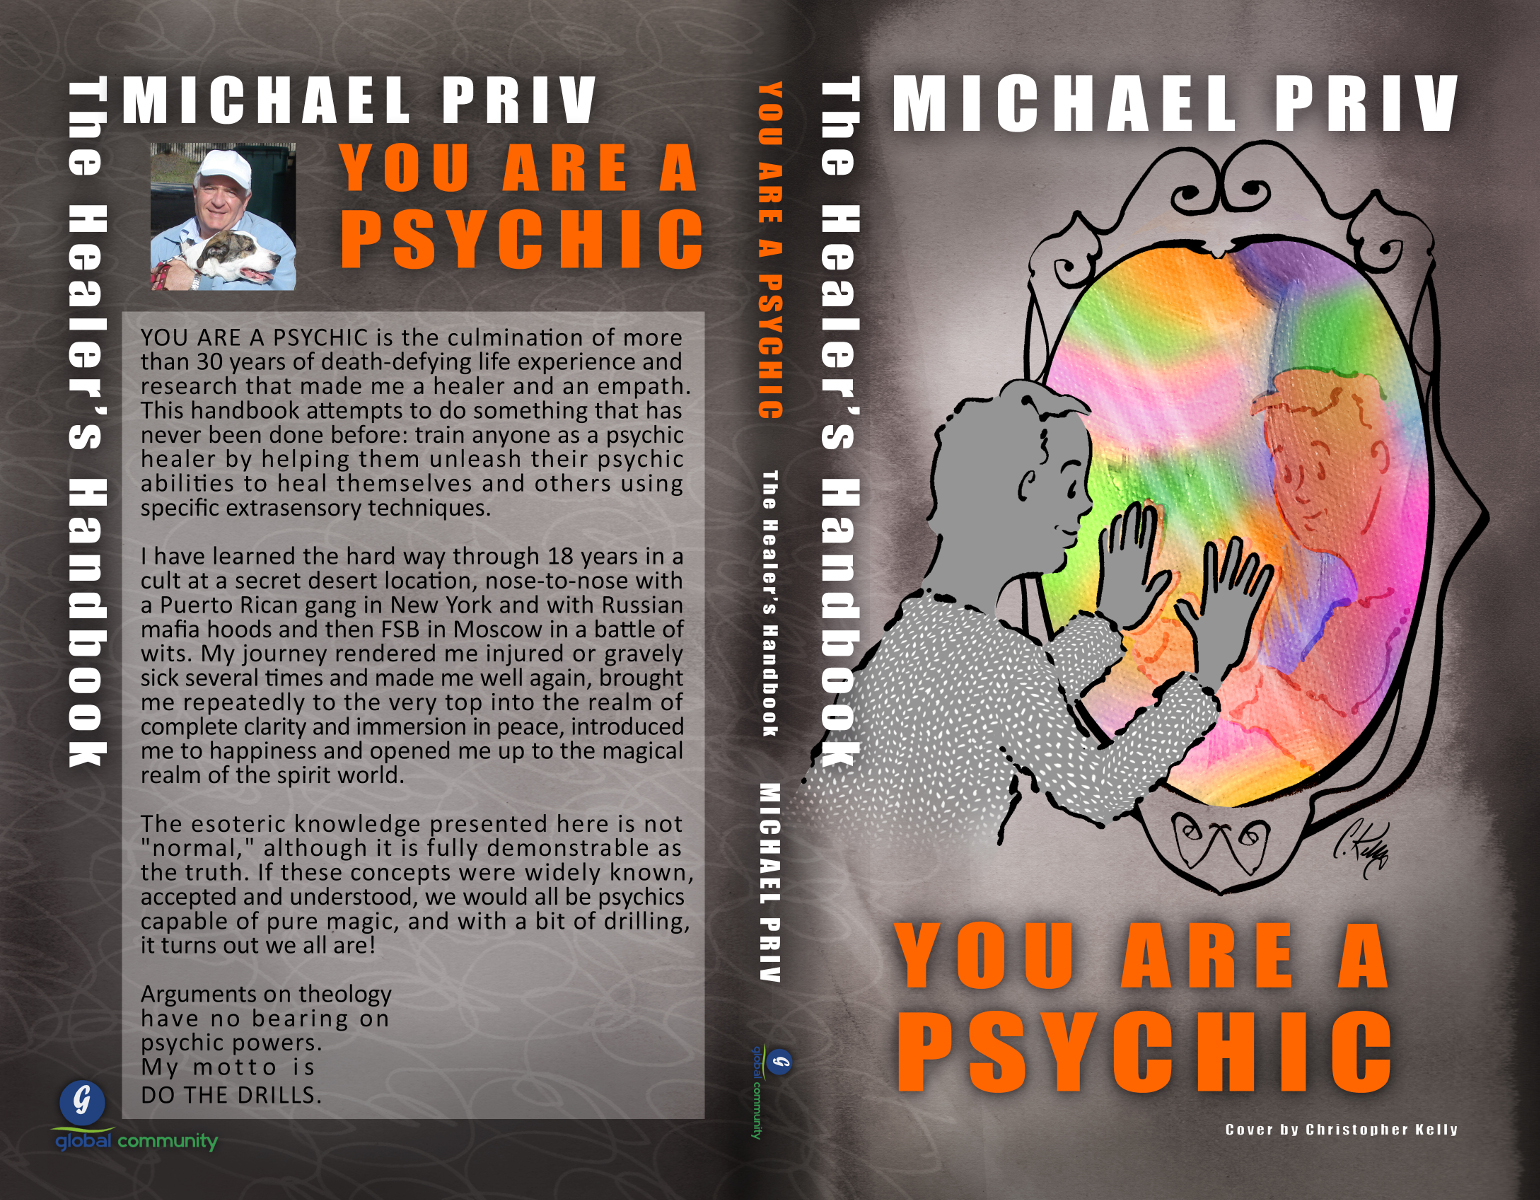 Michael Priv – Author and Screenwriter – Words are the